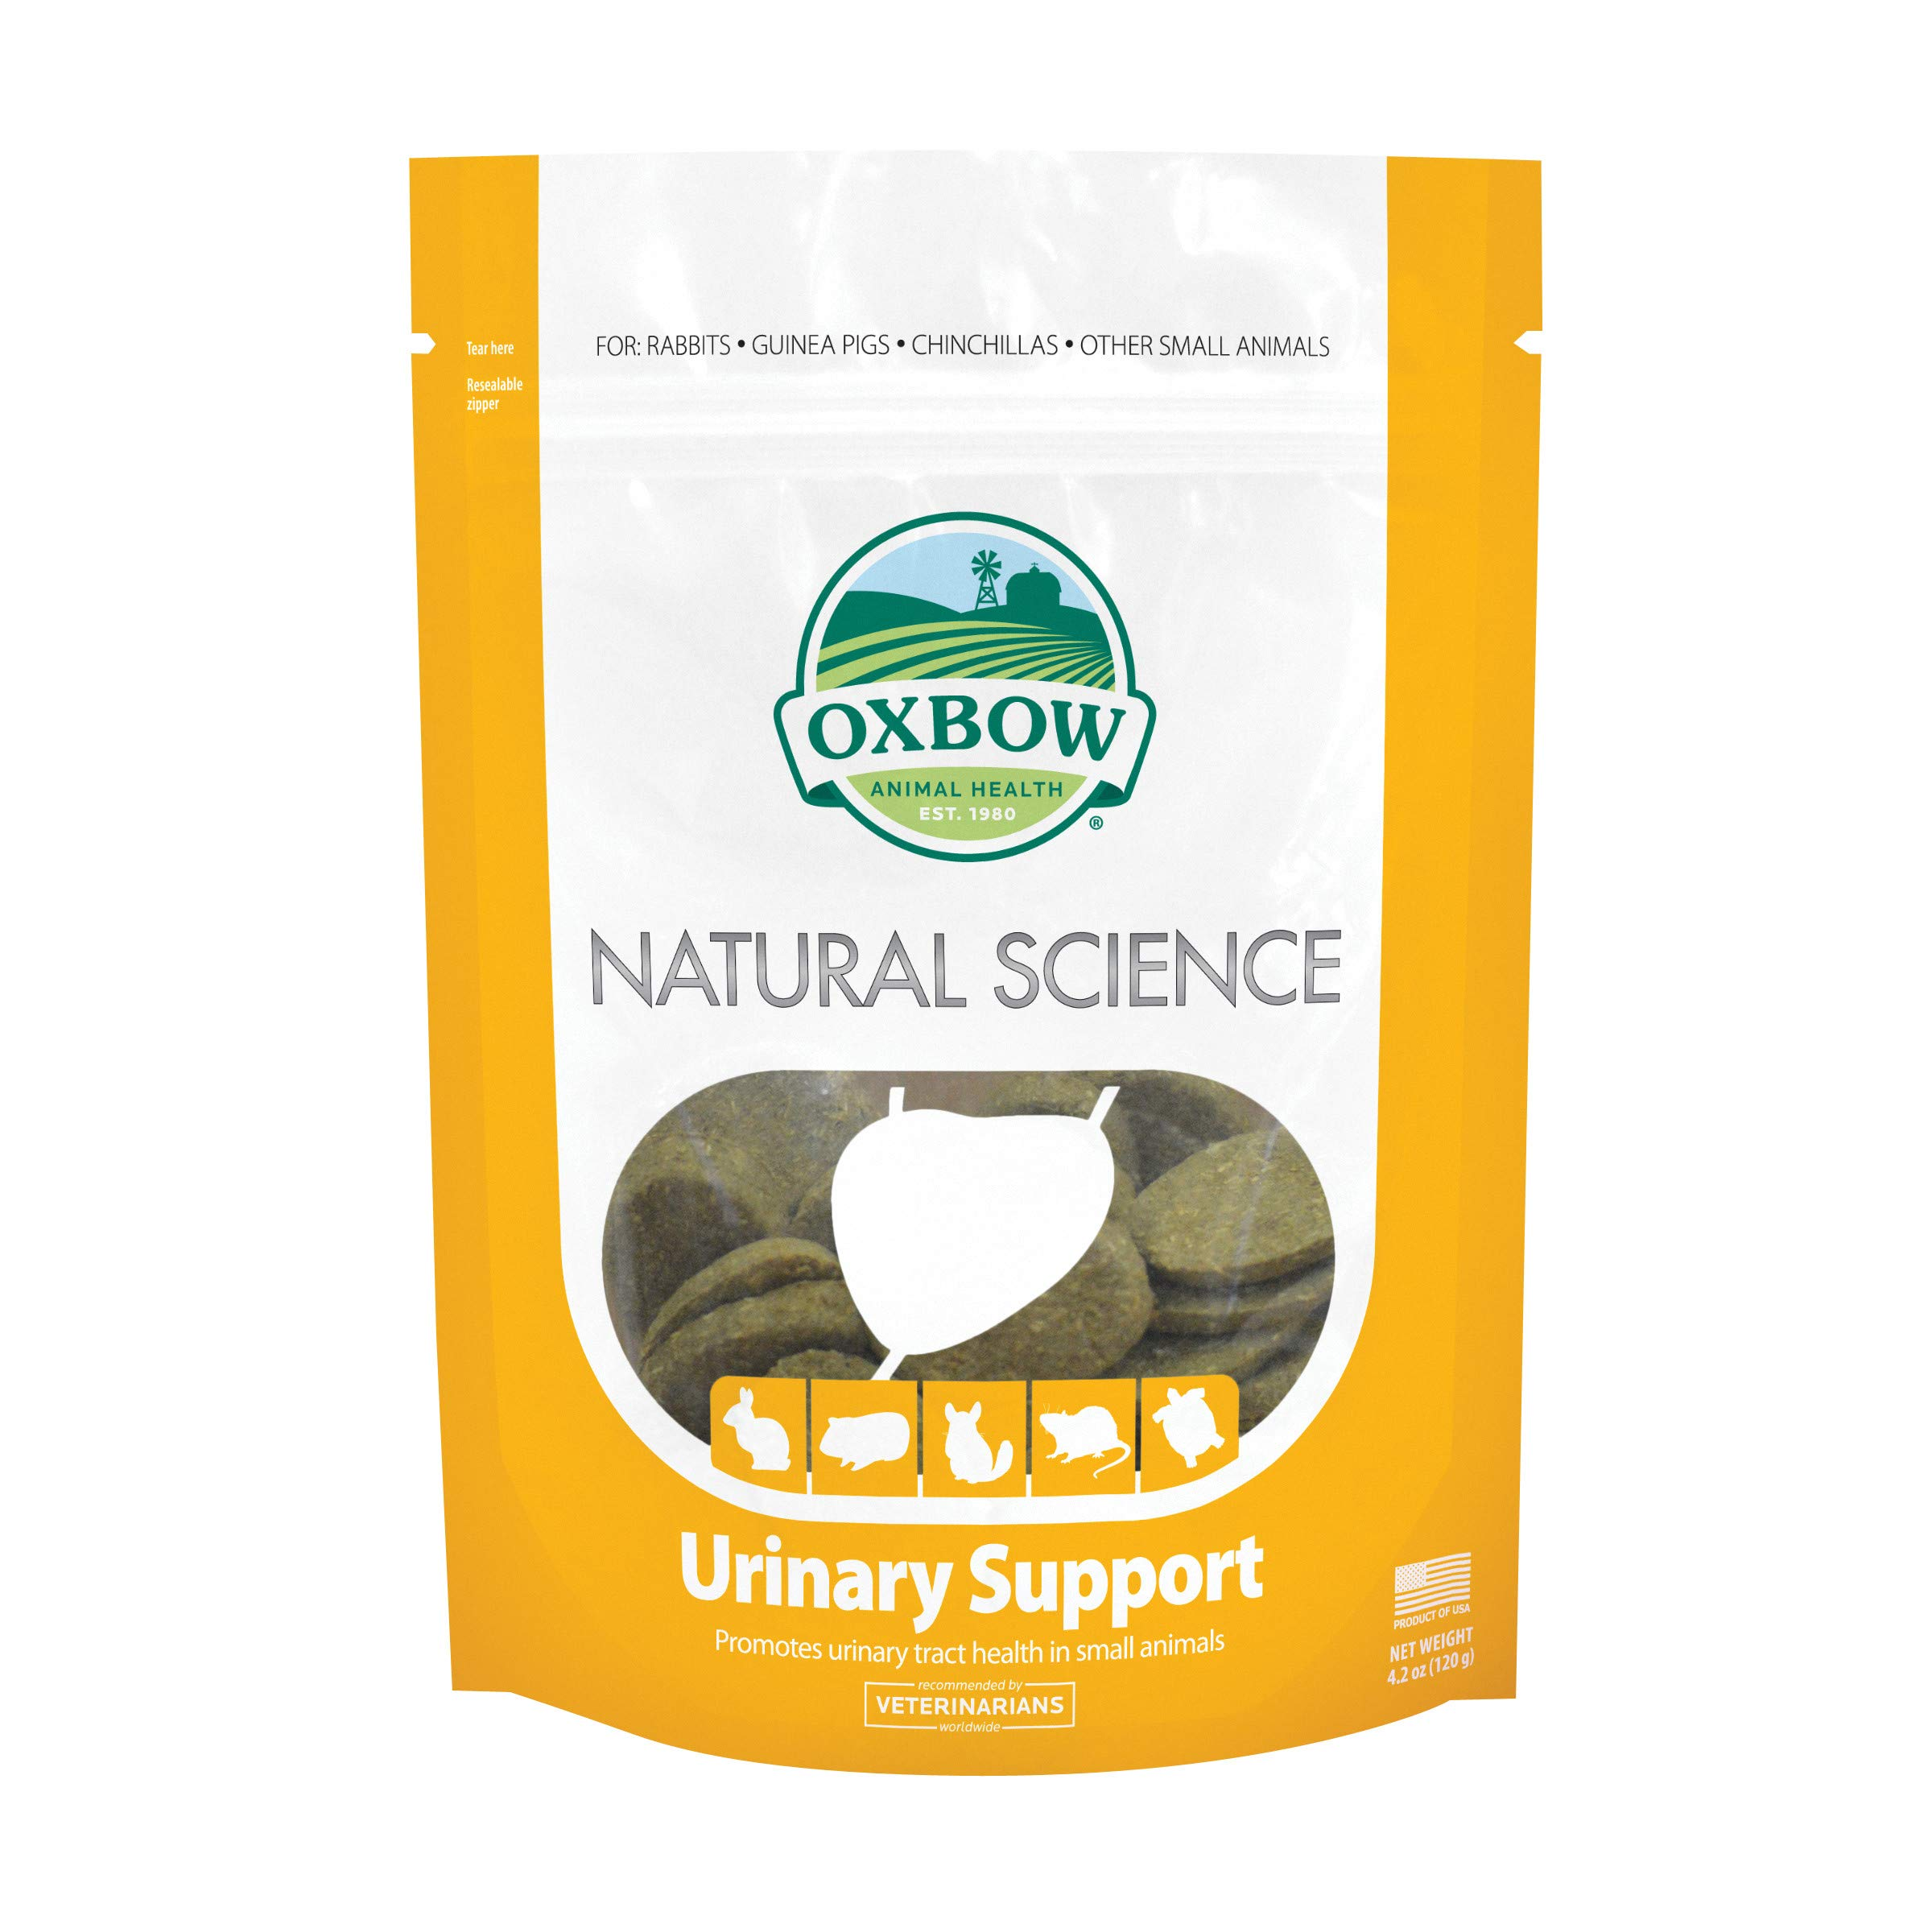 Oxbow Natural Science Urinary Supplement - Renal & Urinary Tract Health Supplement for Small Animals, 4.2 oz.